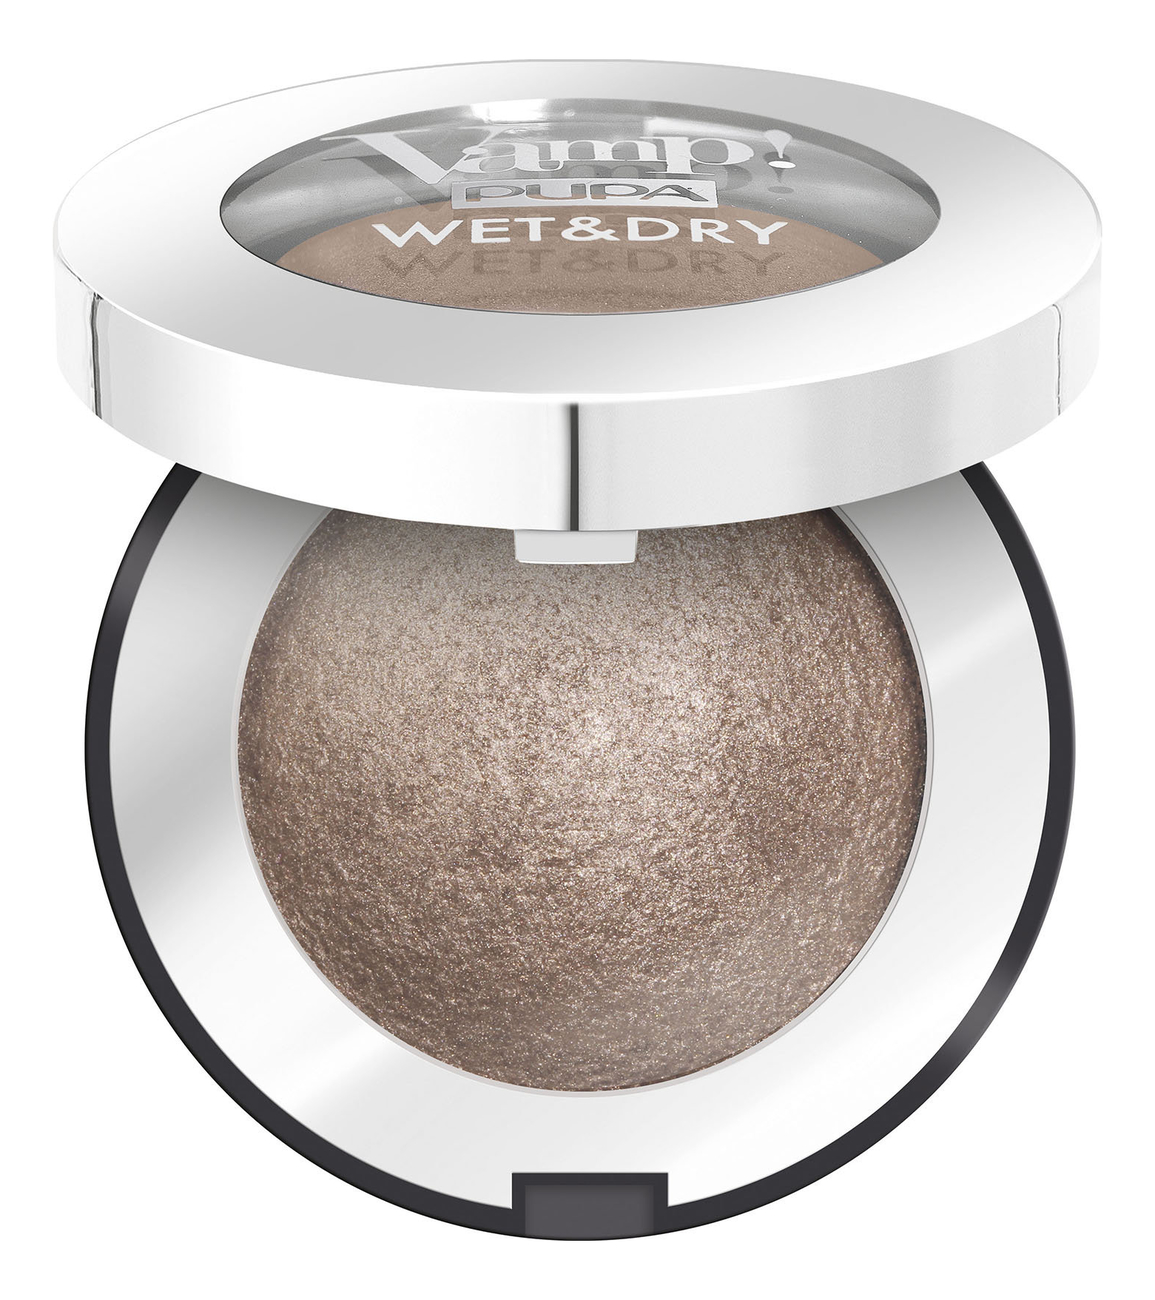 Запеченные тени для век Vamp! Wet & Dry Eyeshadow 1г: 102 Golden Taupe pupa retro illusion eyeshadow